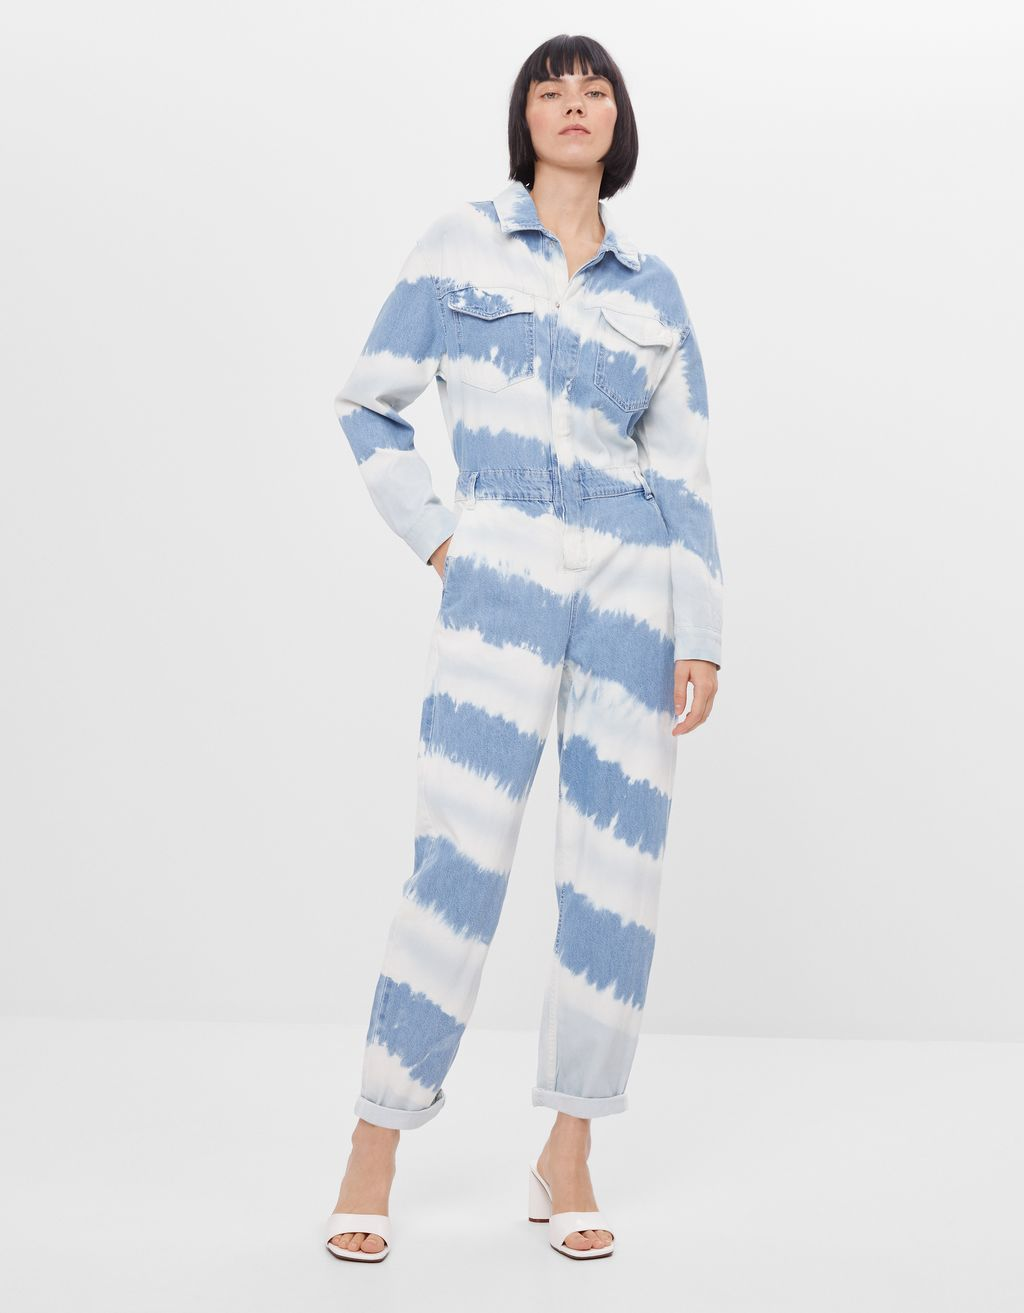 Denim tie-dye jumpsuit